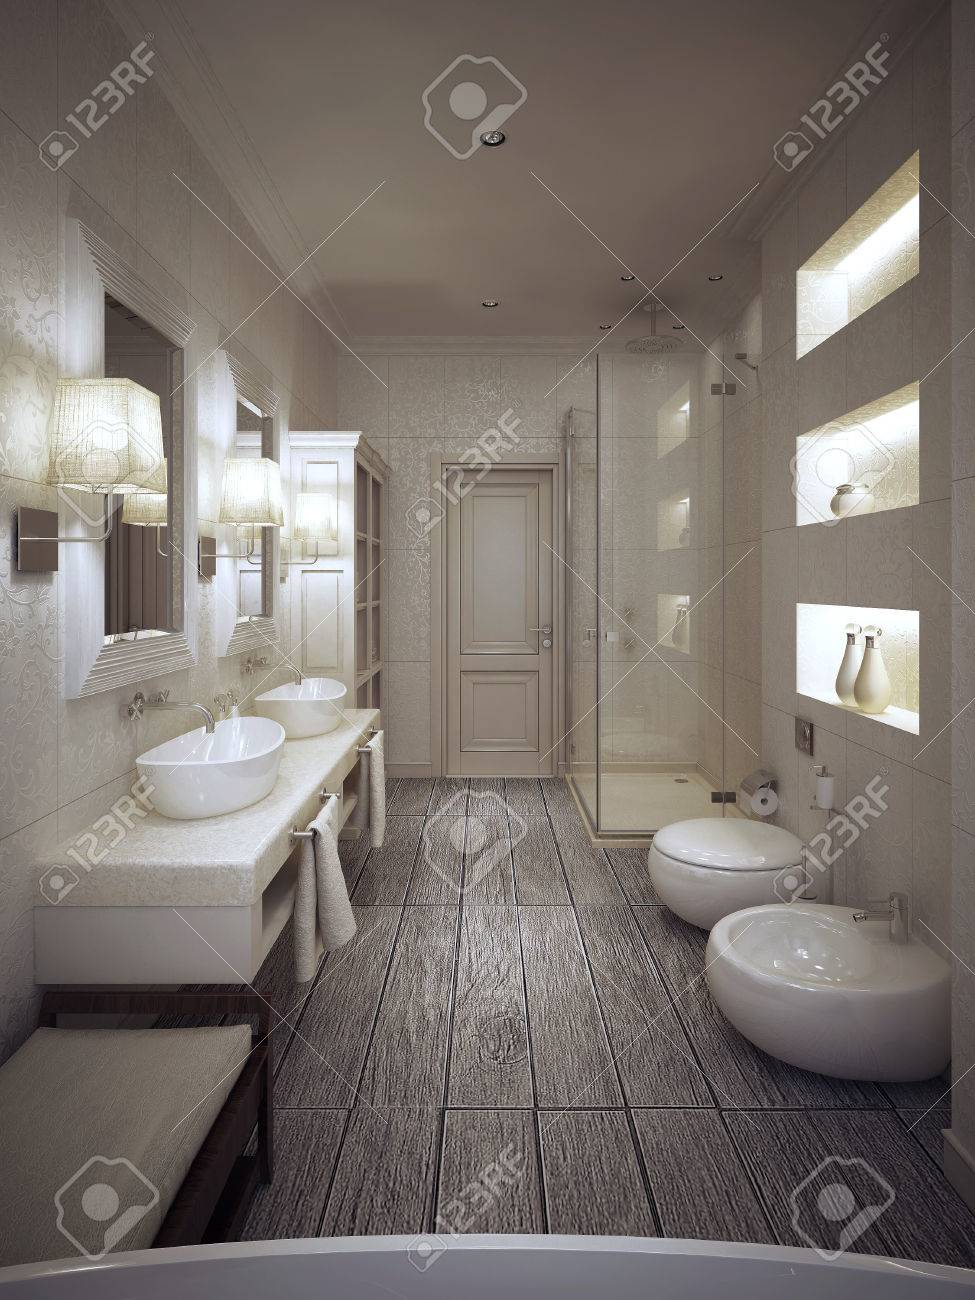 Salle De Bain Provencale bathroom in provencal style in beige and white tones. 3d render.